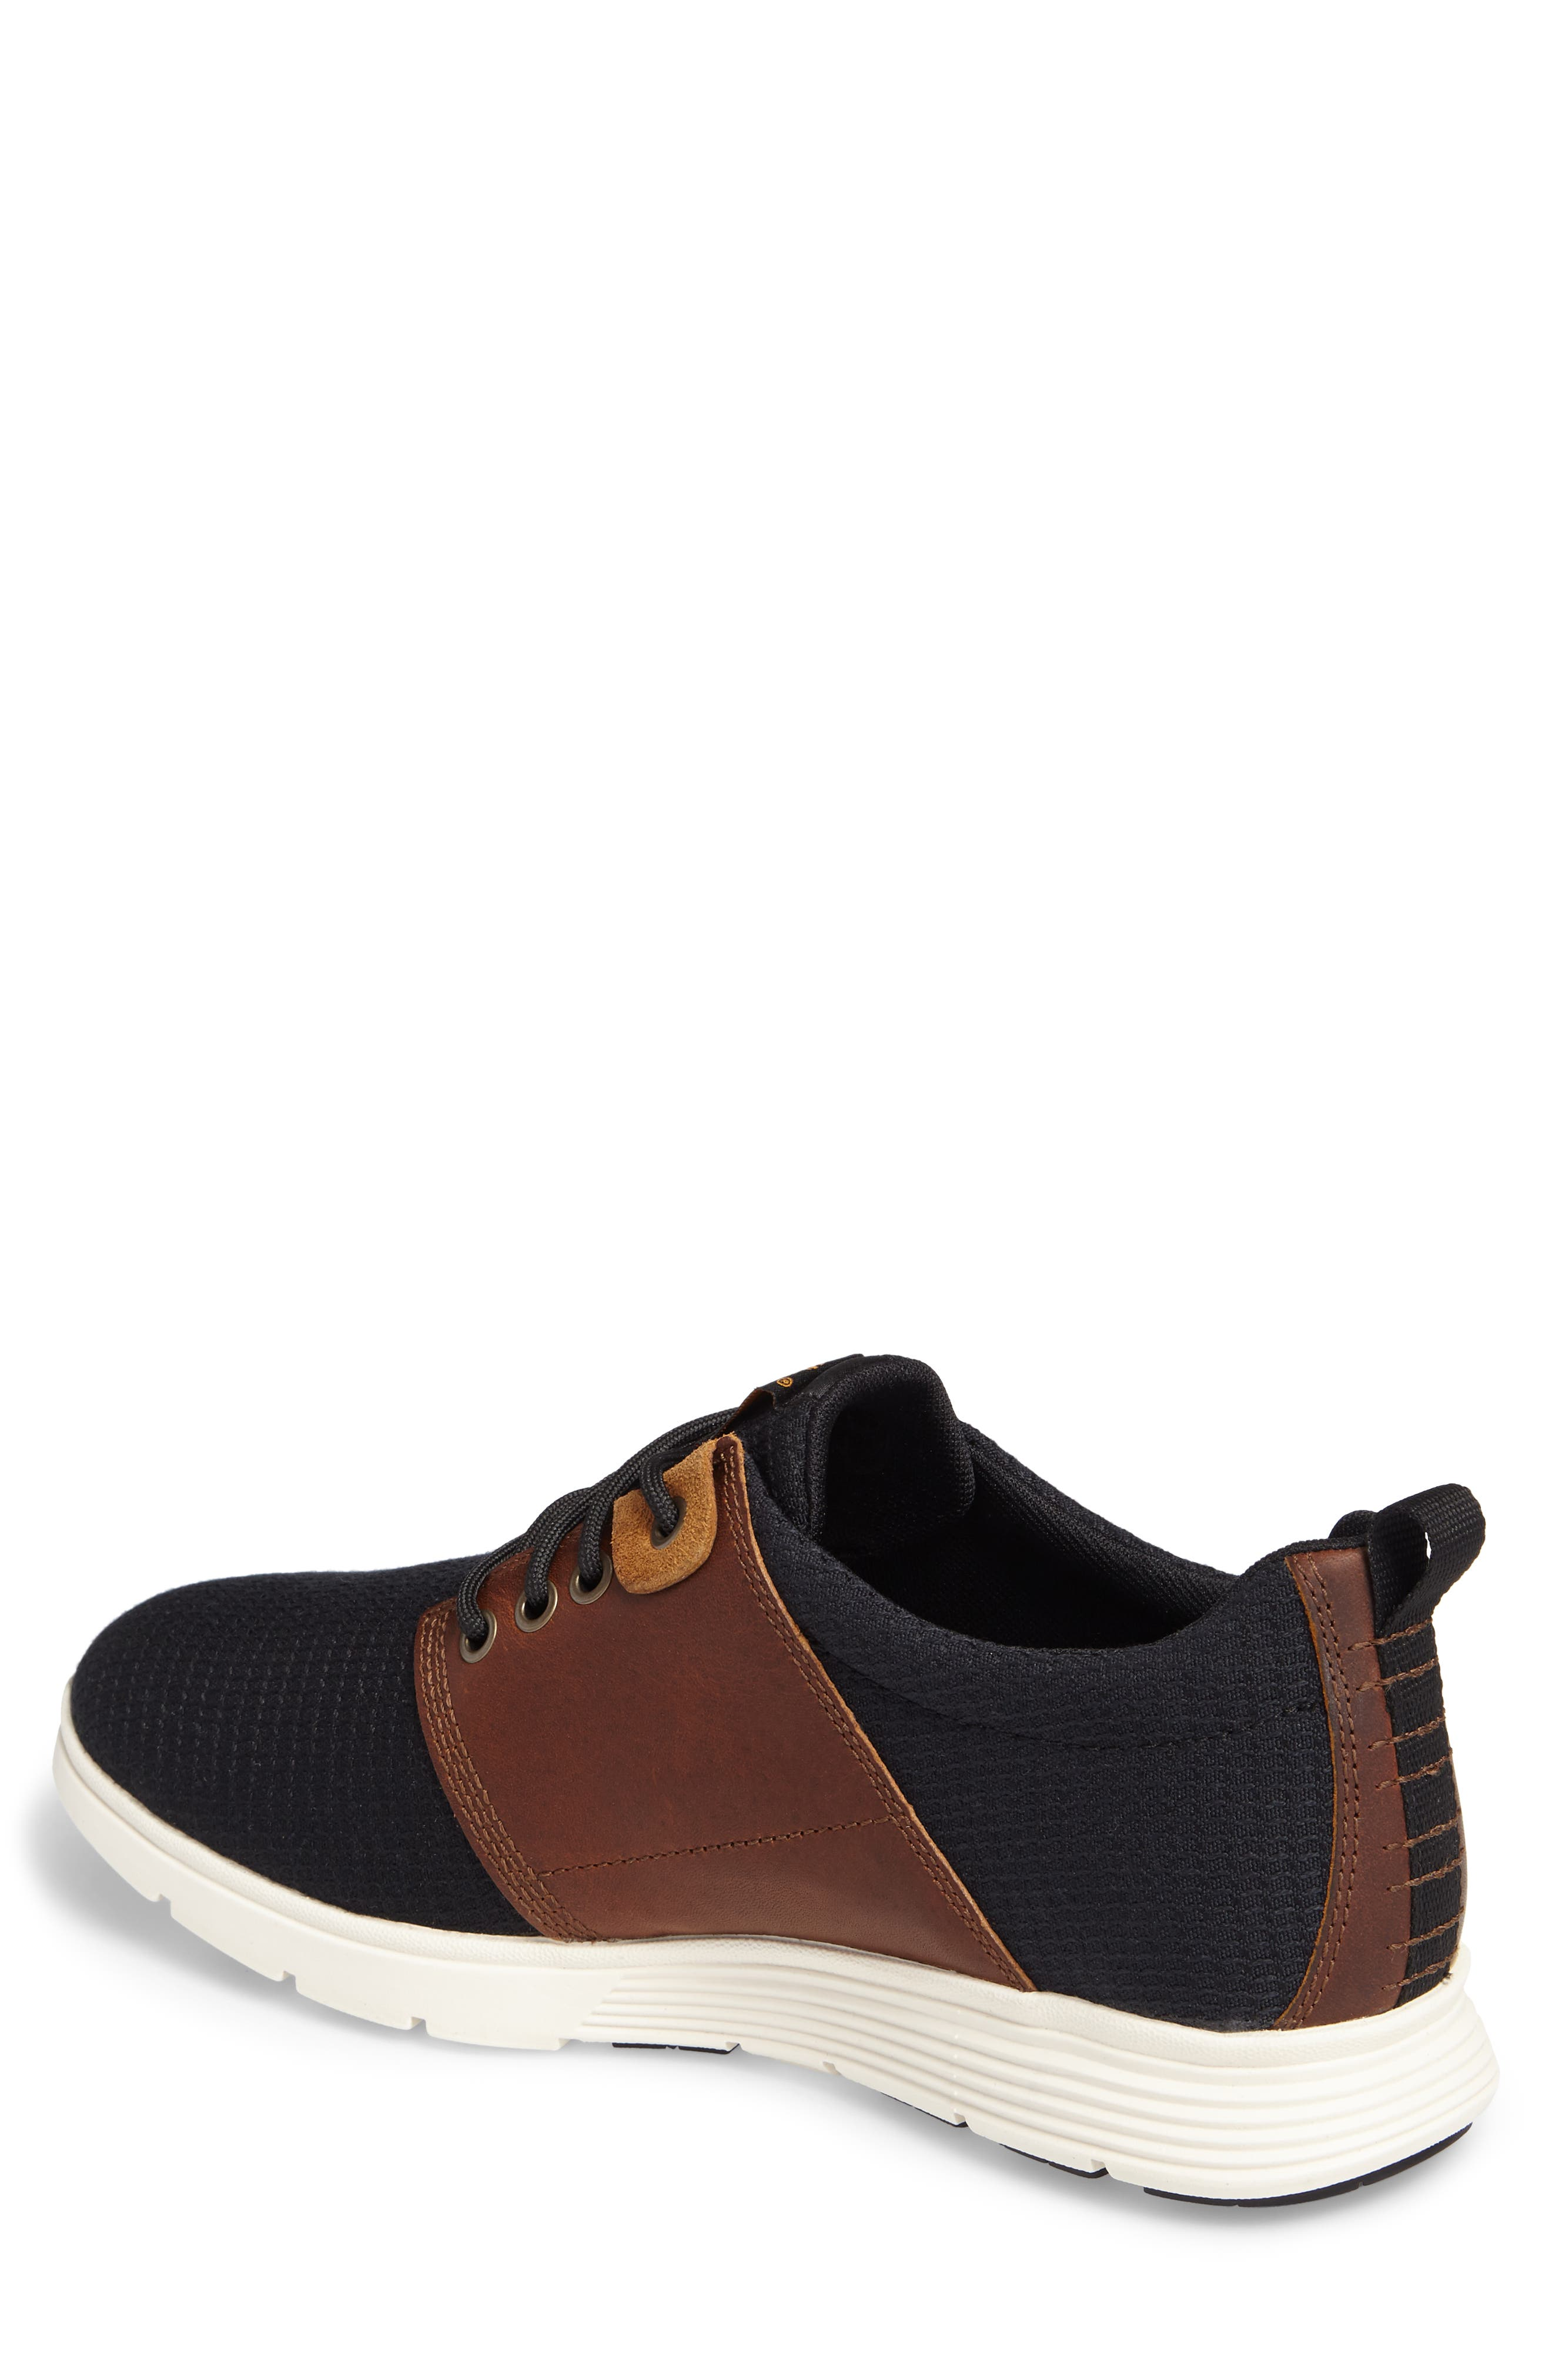 Alternate Image 2  - Timberland Killington Derby (Men)